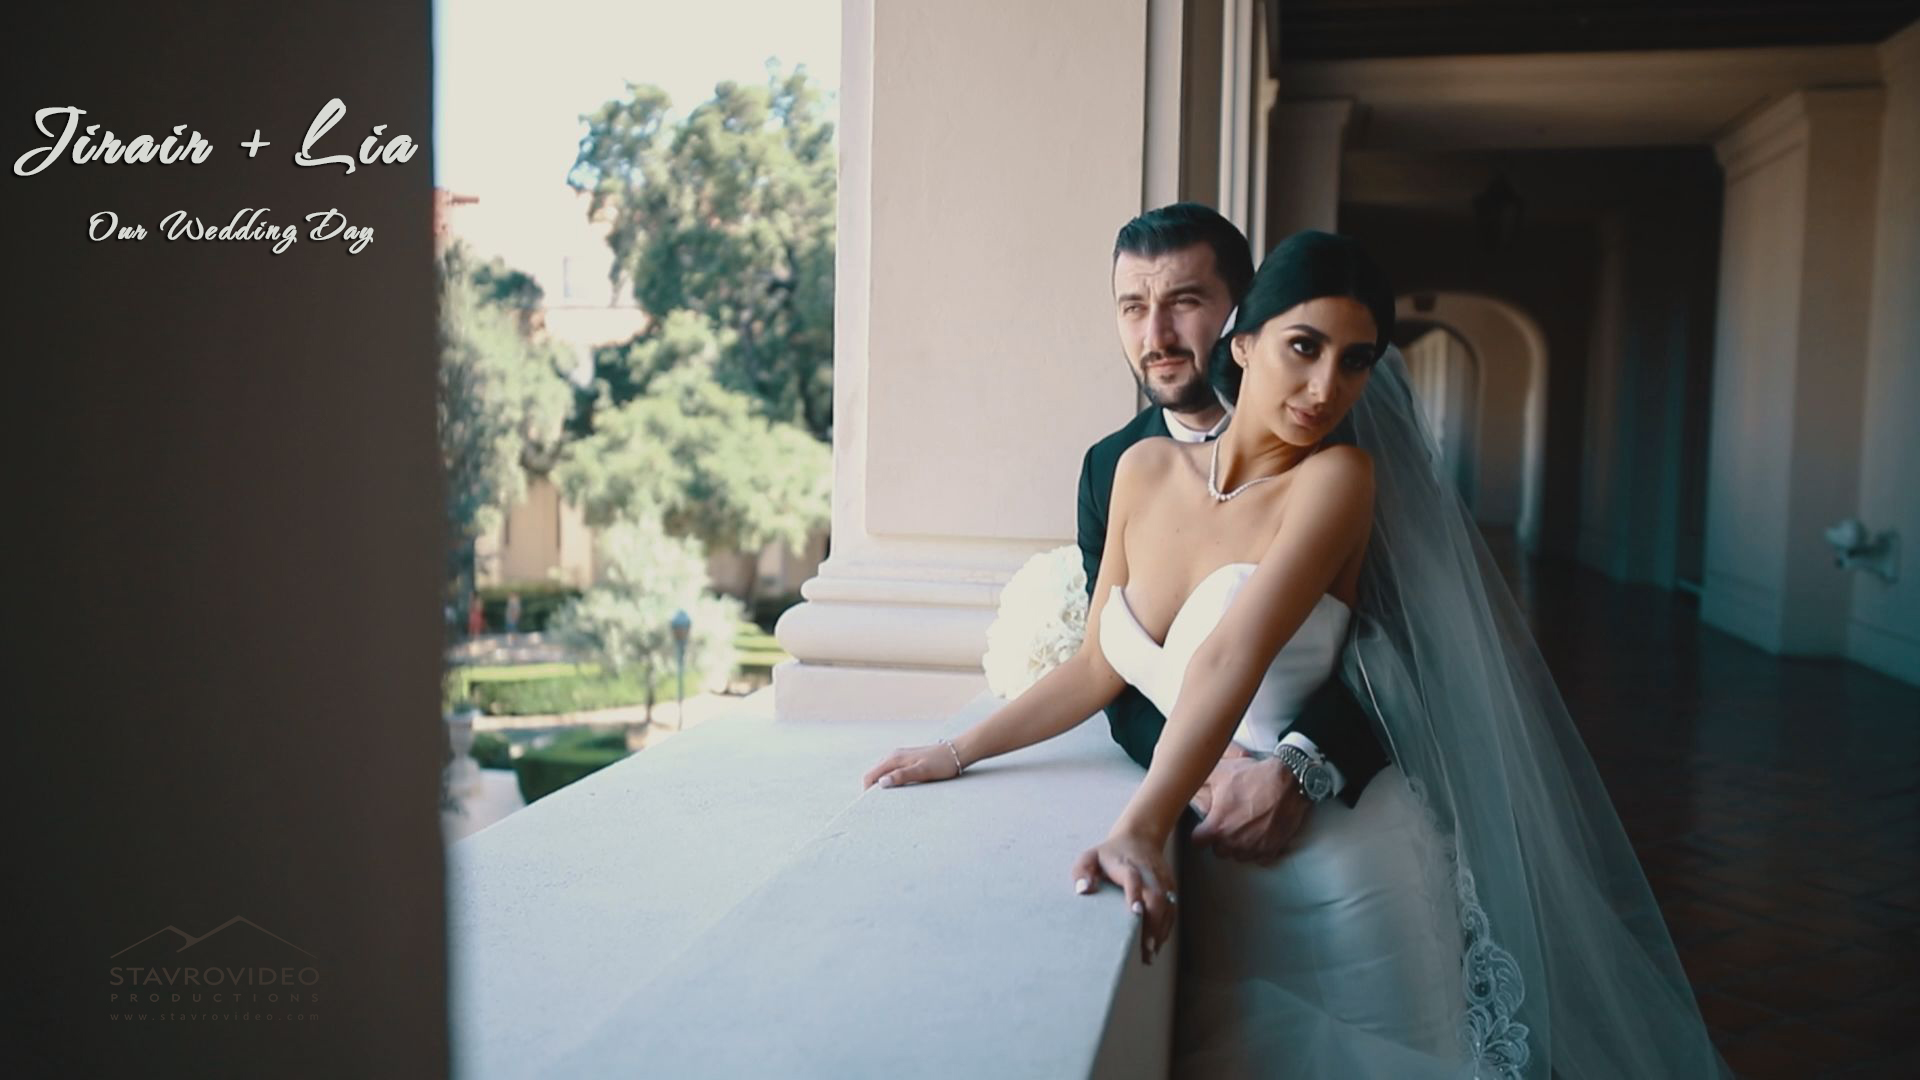 Jirair + Lia | Glendale, California | Brandview collection